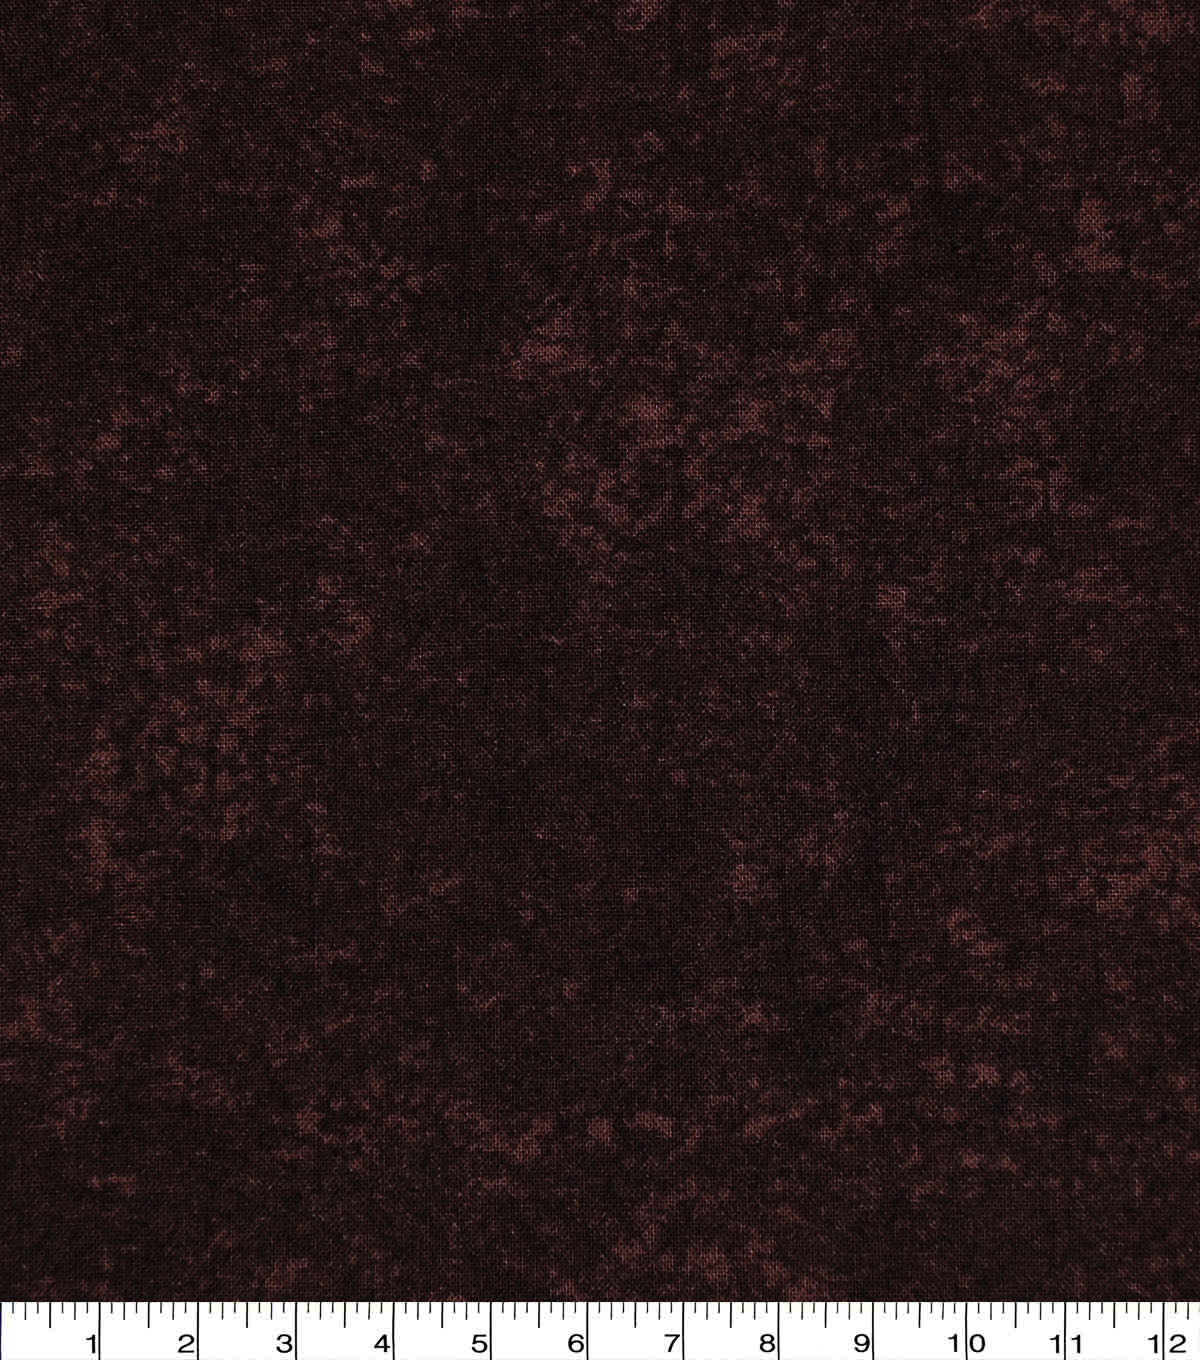 Keepsake Calico Cotton Fabric -Brown Distressed